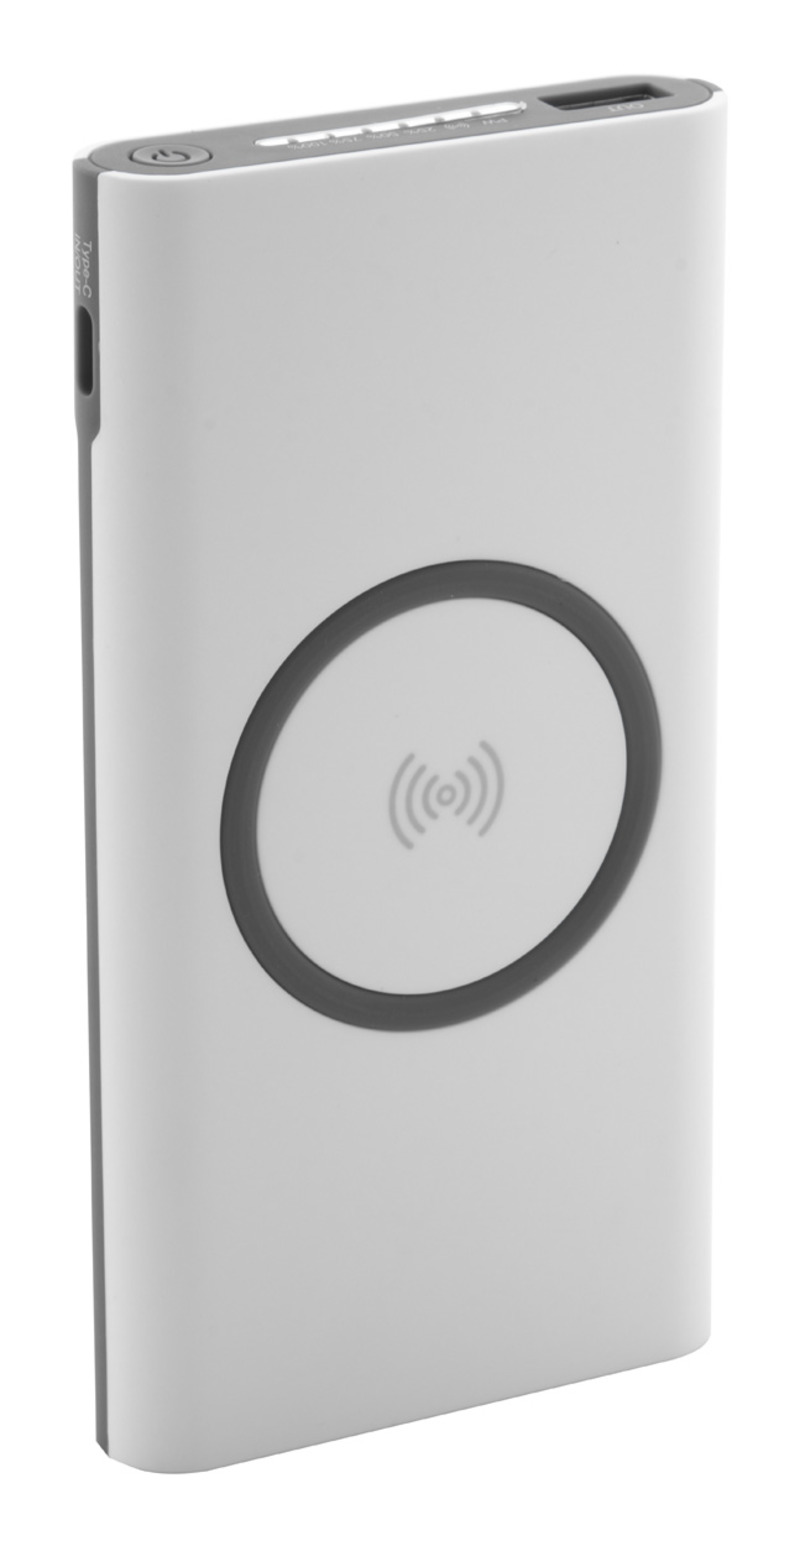 Quizet power bank